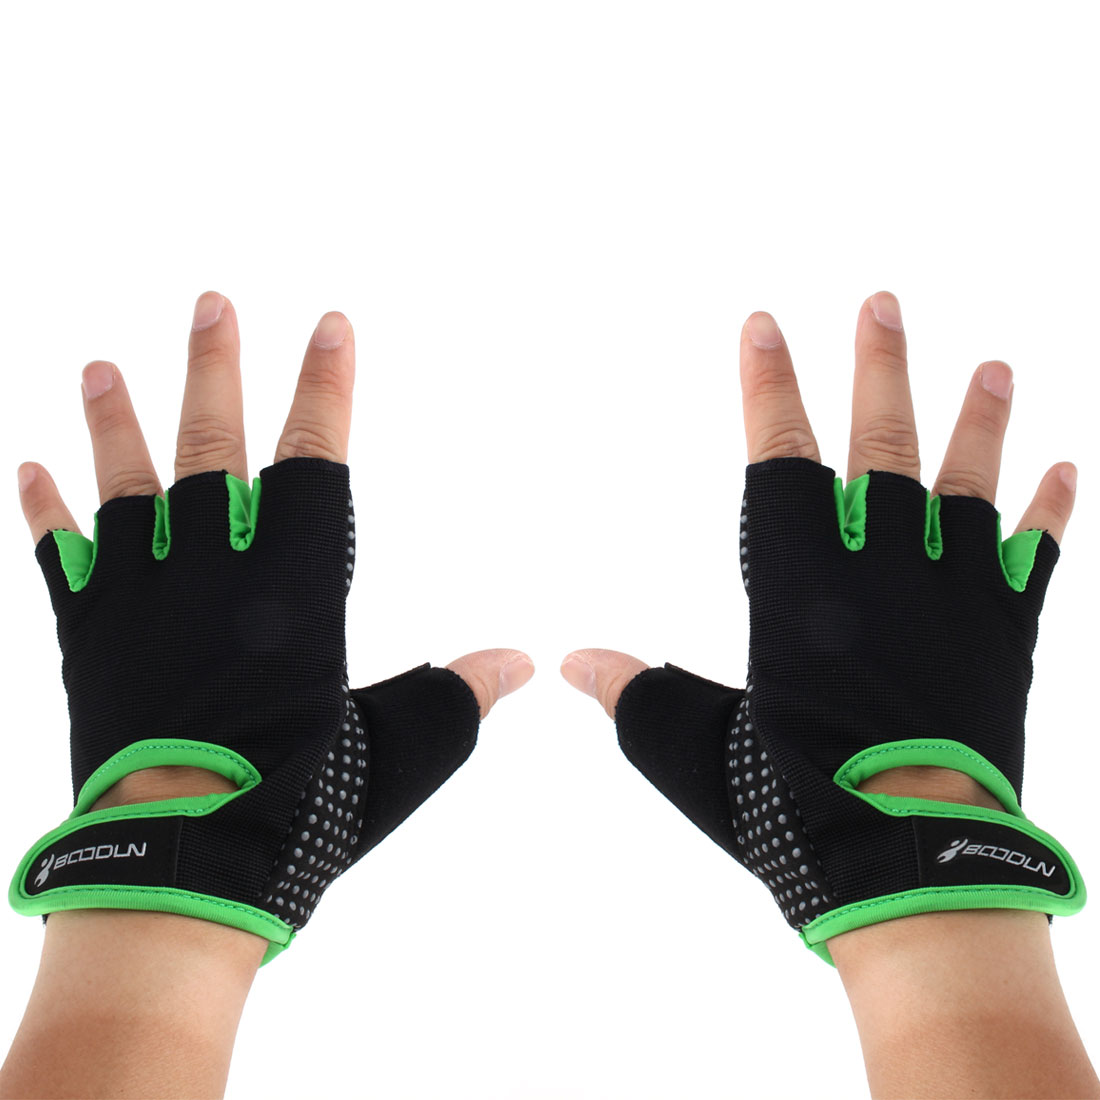 BOODUN Authorized Gym Workout Weight Lifting Training Adjustable Anti Slip Breathable Fitness Half Finger Gloves Green S Size Pair